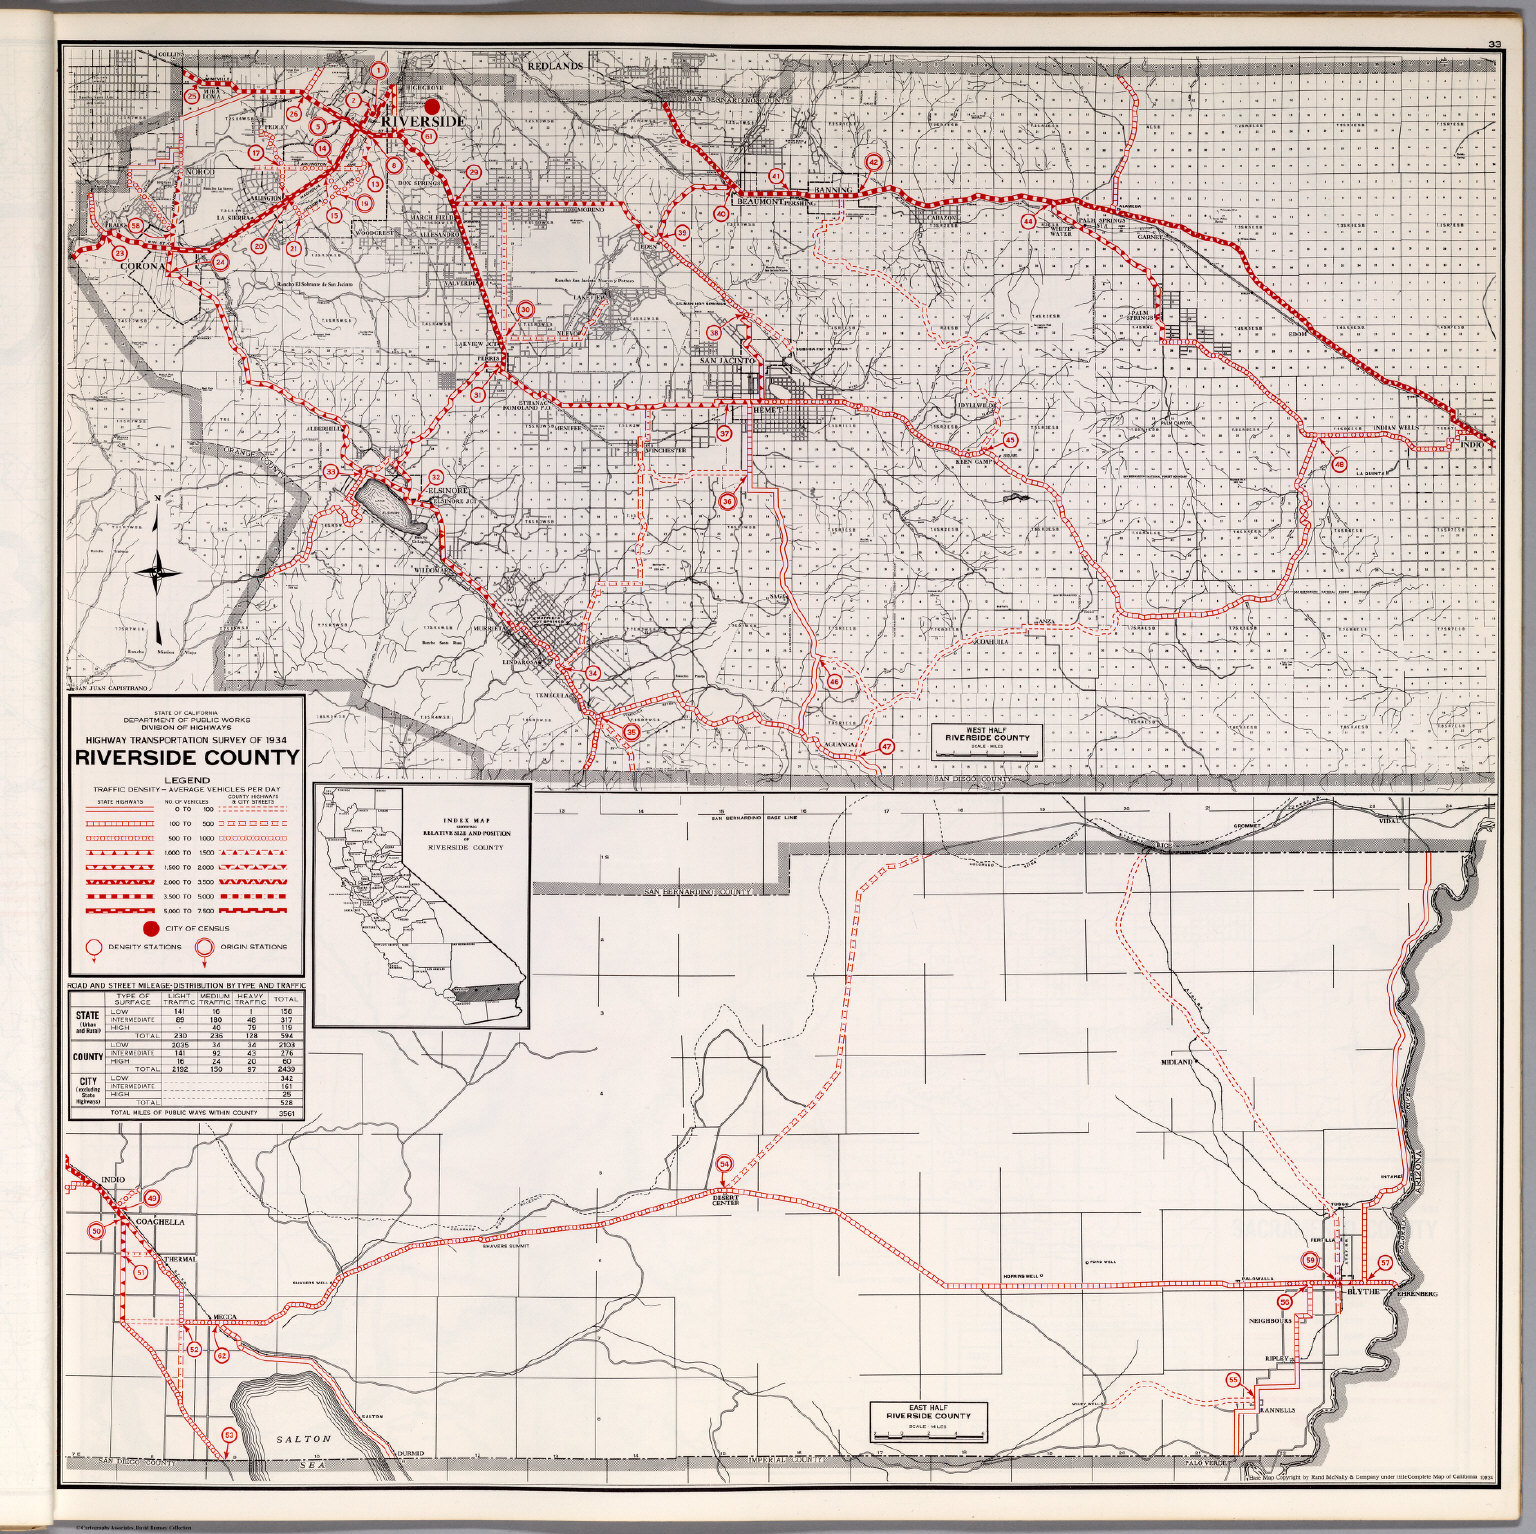 Riverside County. - David Rumsey Historical Map Collection